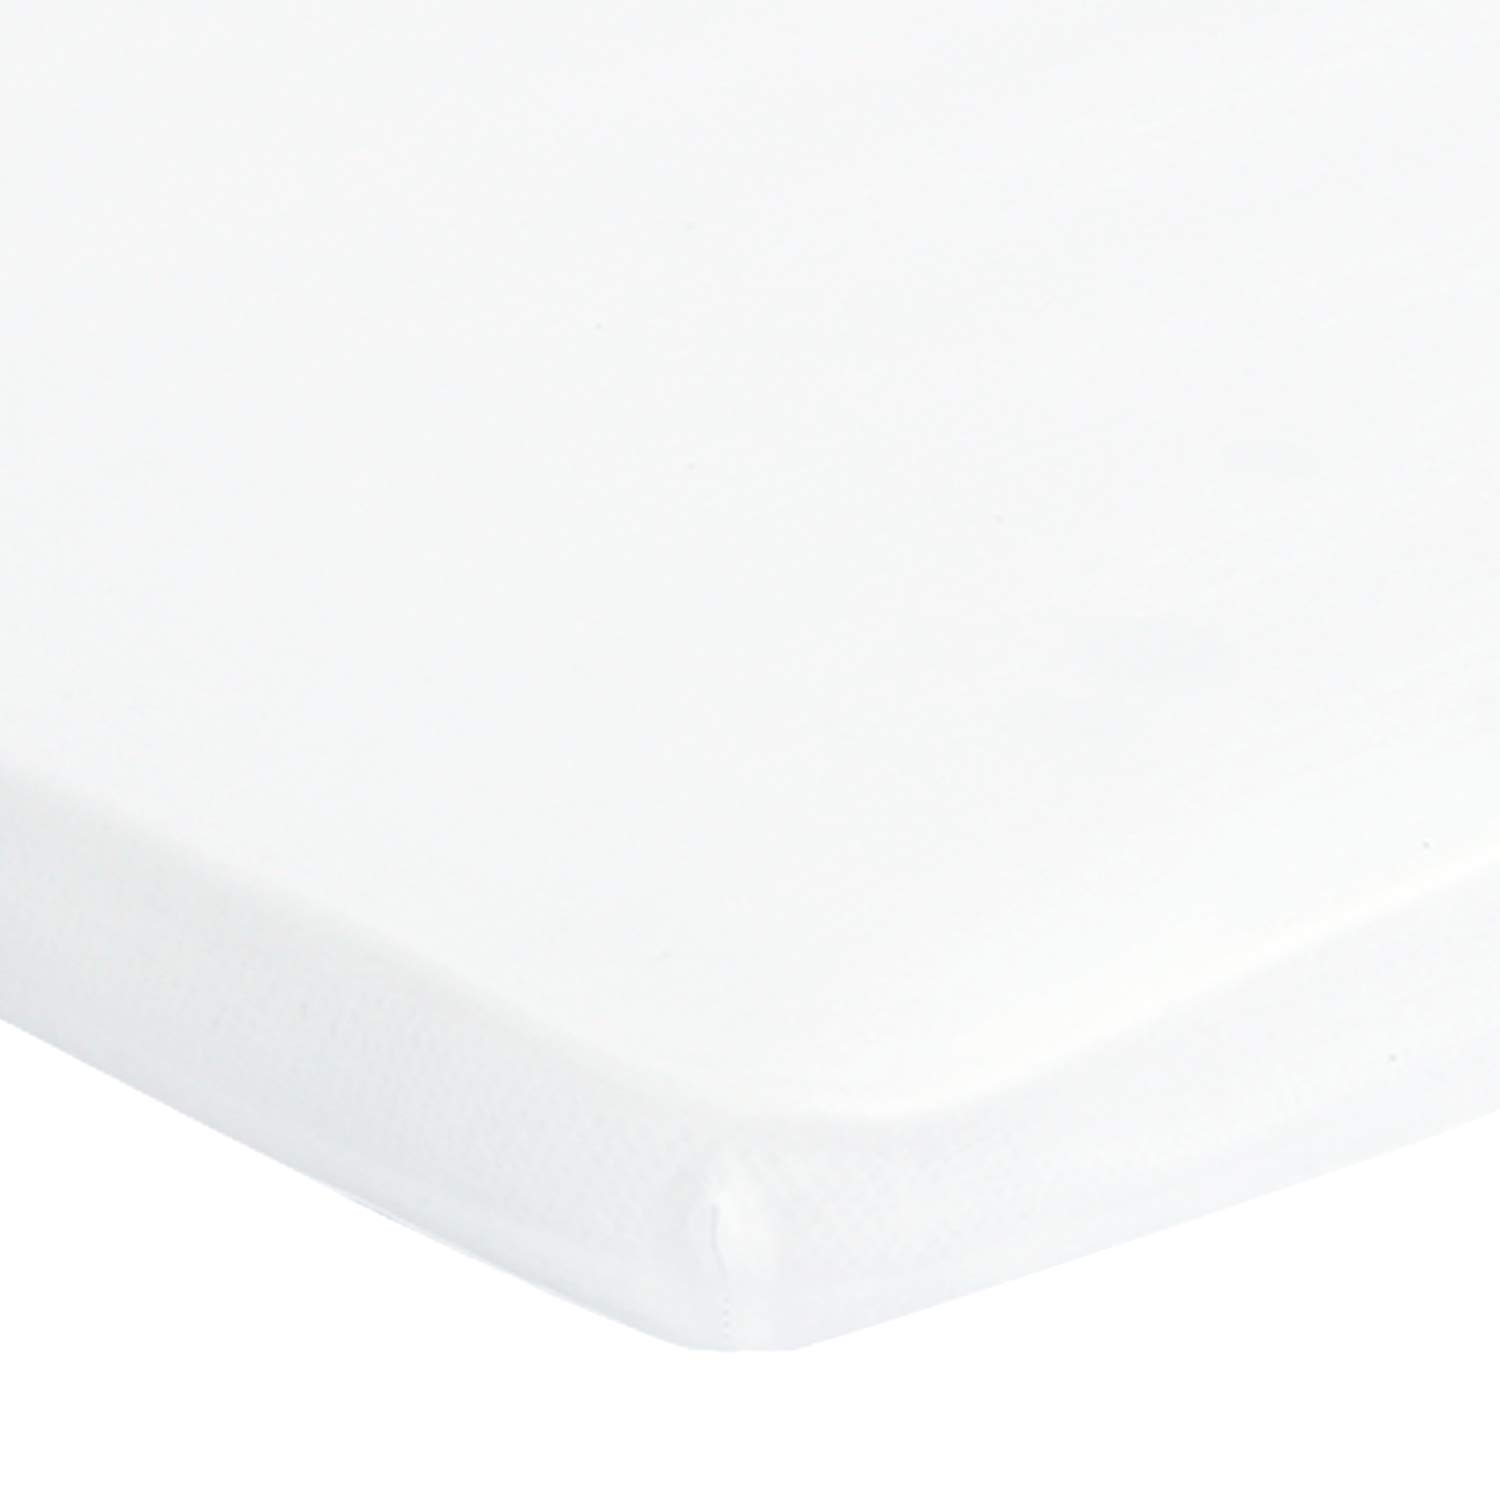 """Designthology 100% Natural Cotton Muslin Pack N Play Sheet Fitted, Portable Mini Crib Sheet for Baby Boy & Girl, Ultra-Soft Breathable Playard Playpen Sheet, Unisex White (24"""" X 38"""" X 5"""")"""